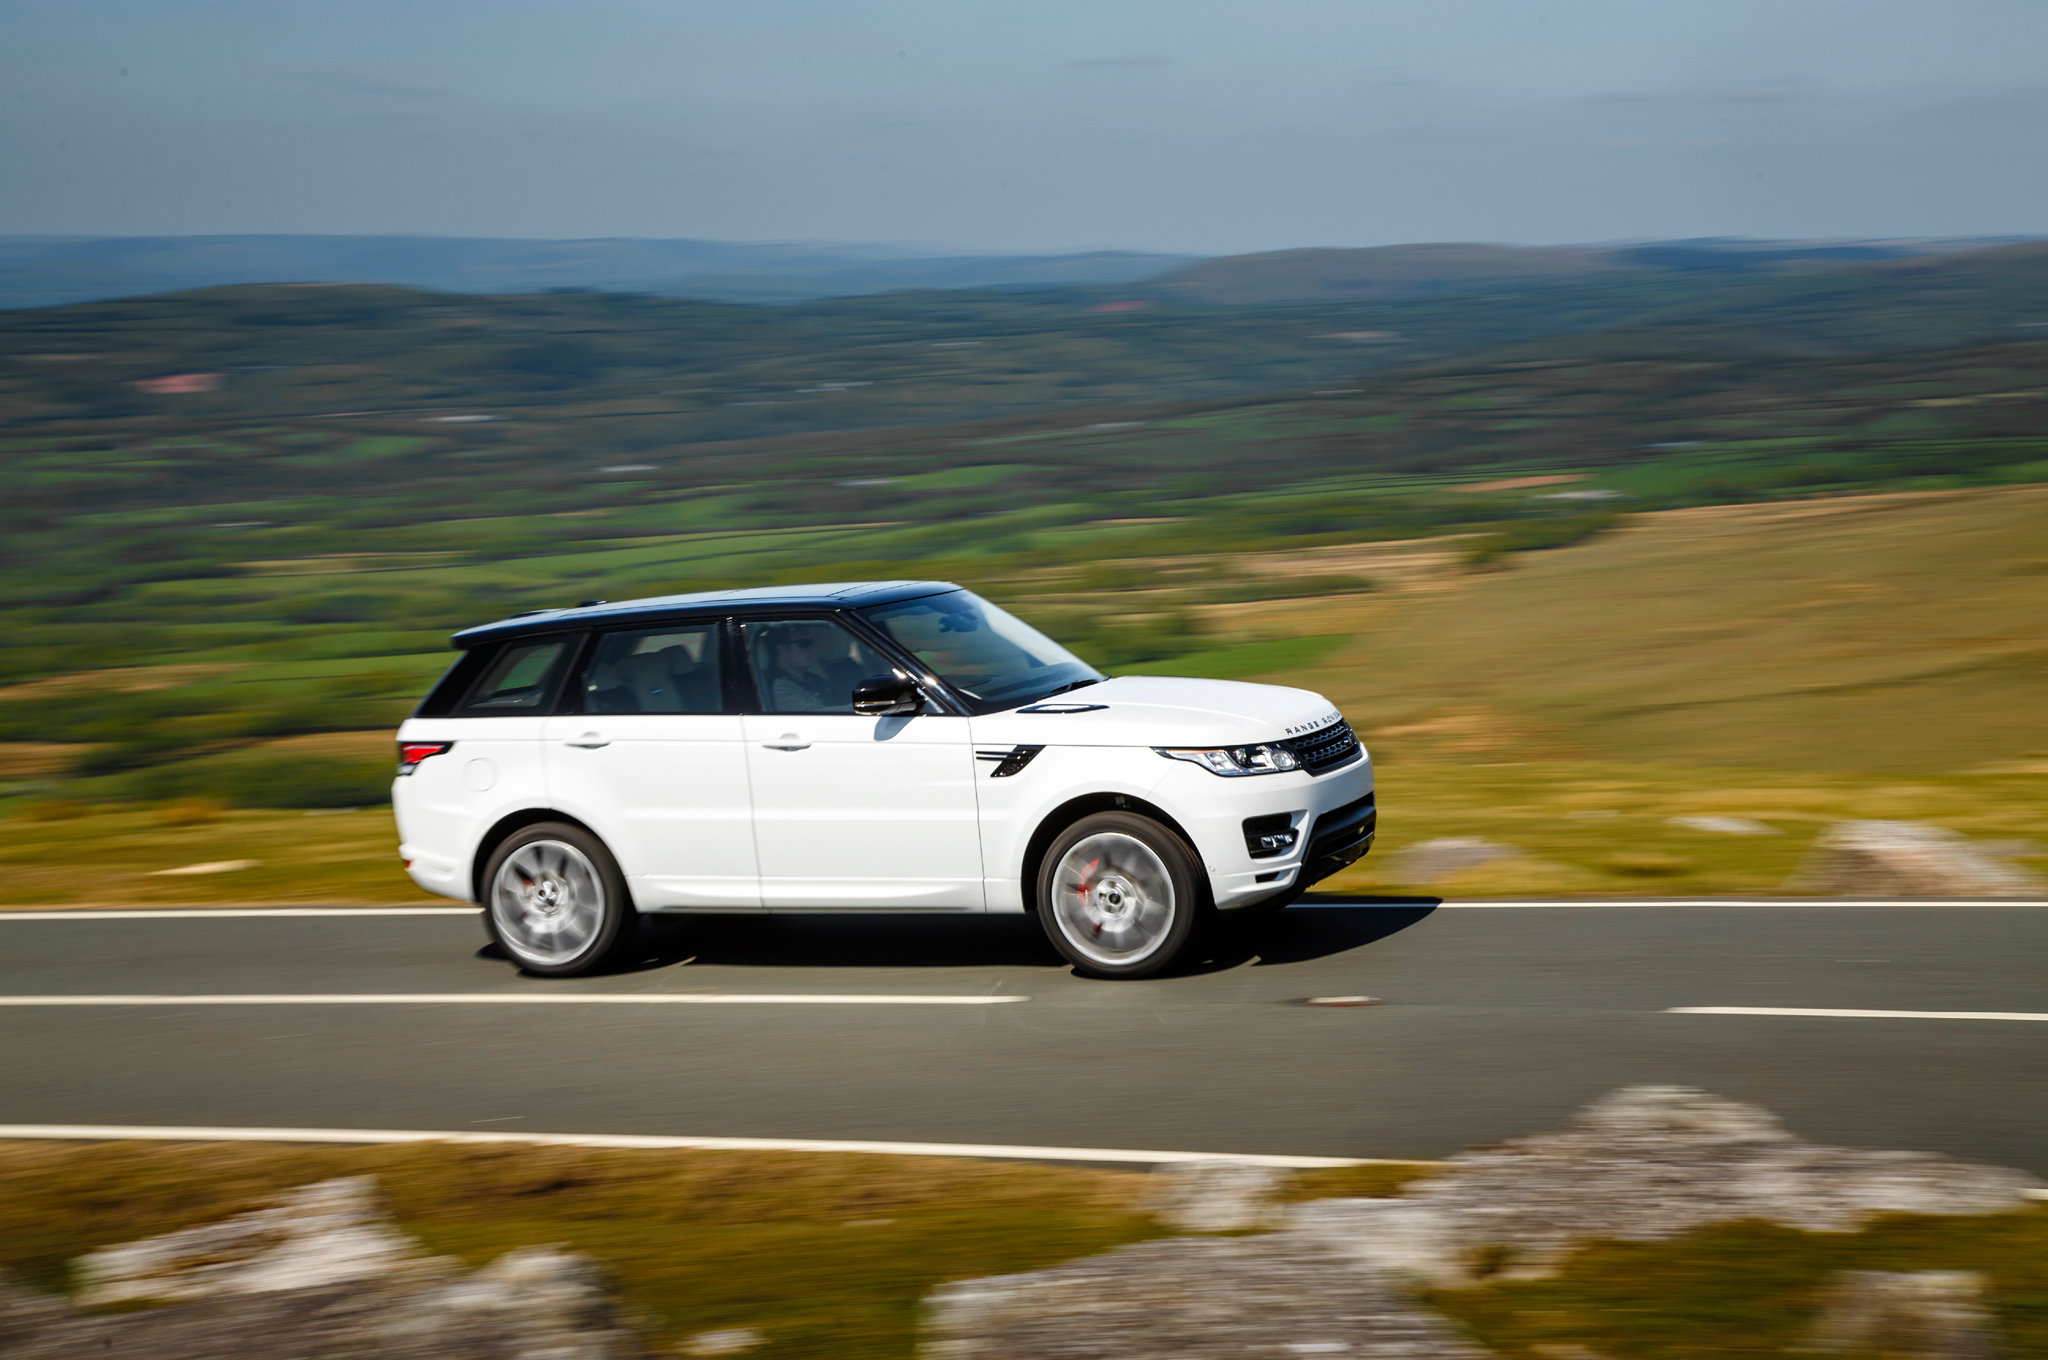 2014 Land Rover Range Rover Sport Information and photos MOMENTcar